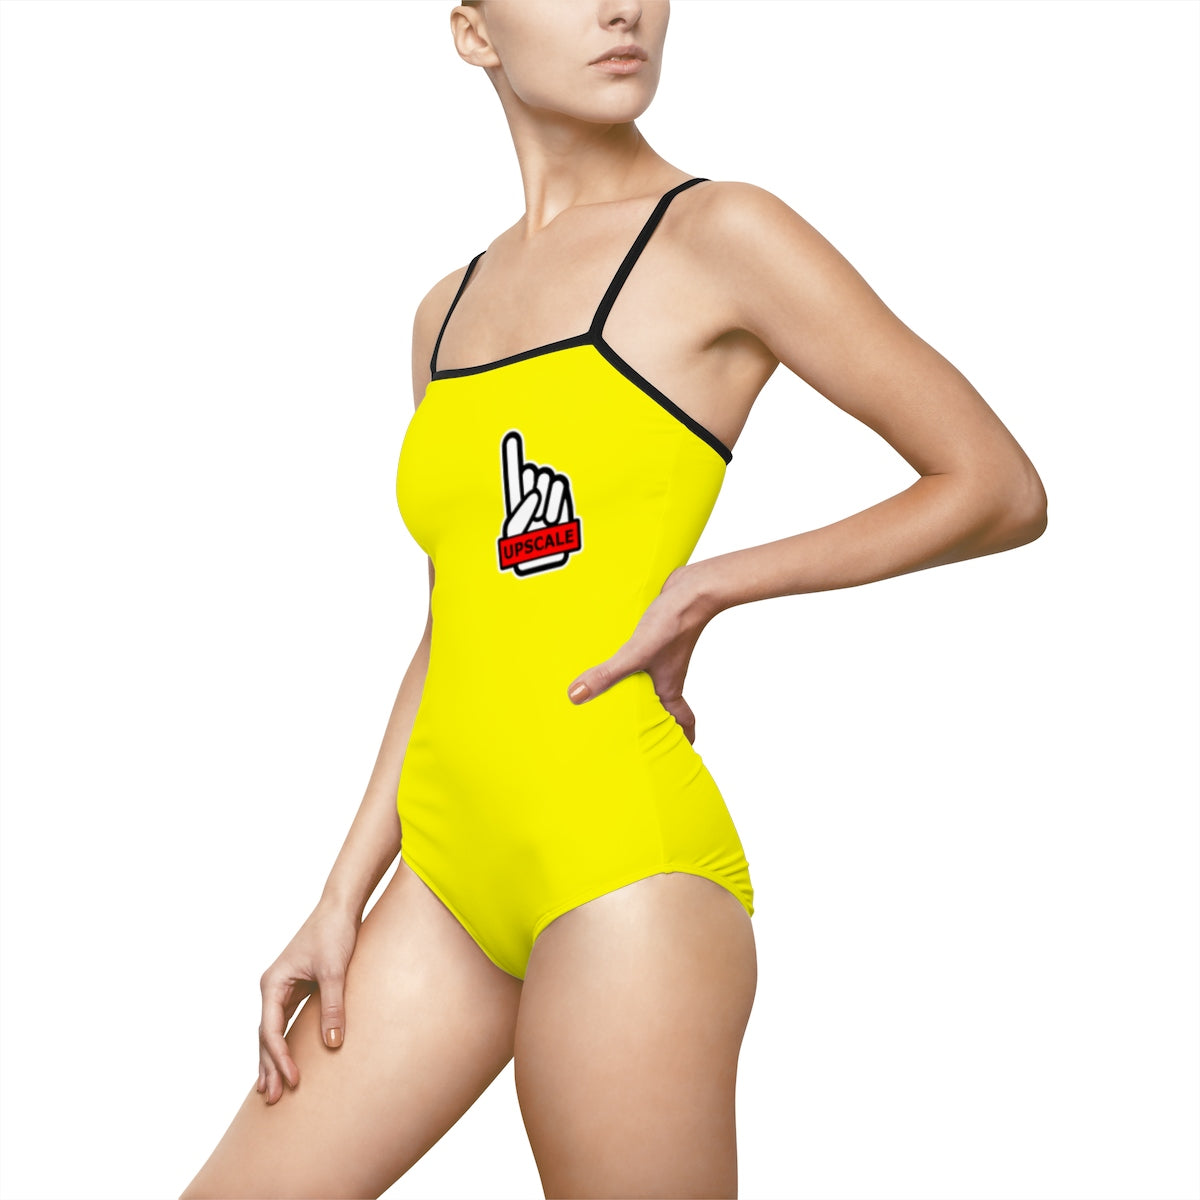 UPSCALE BELIZE - Womens Swimsuit in Yellow by Reefmonkey partner Squad Movements